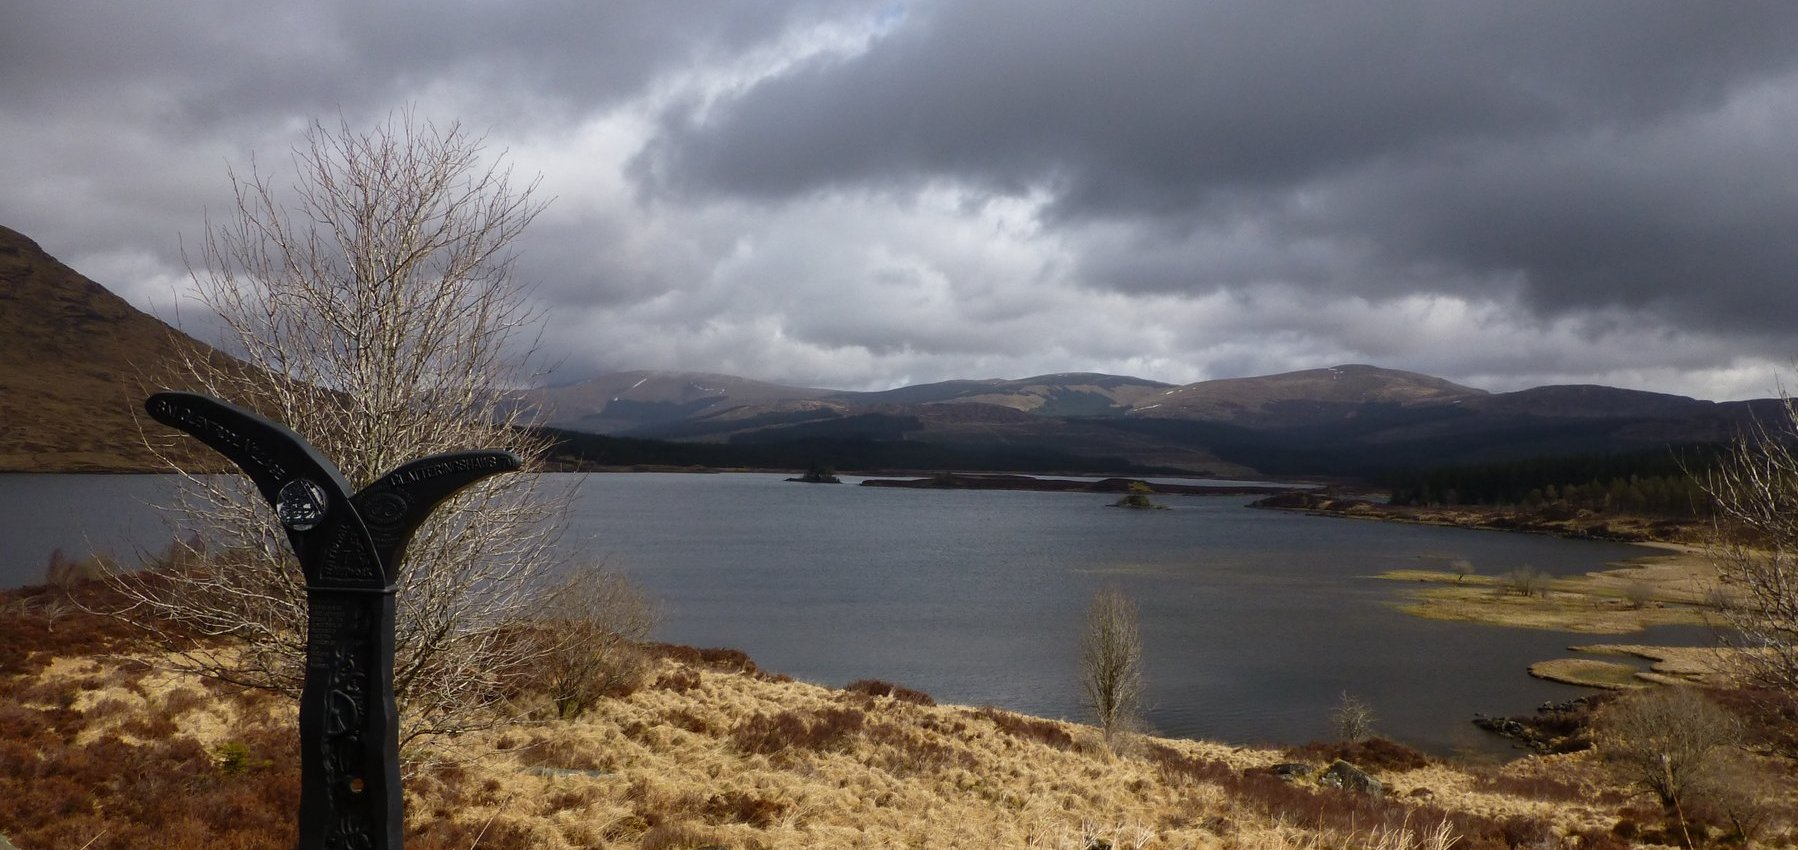 The splendid view across Loch Dee